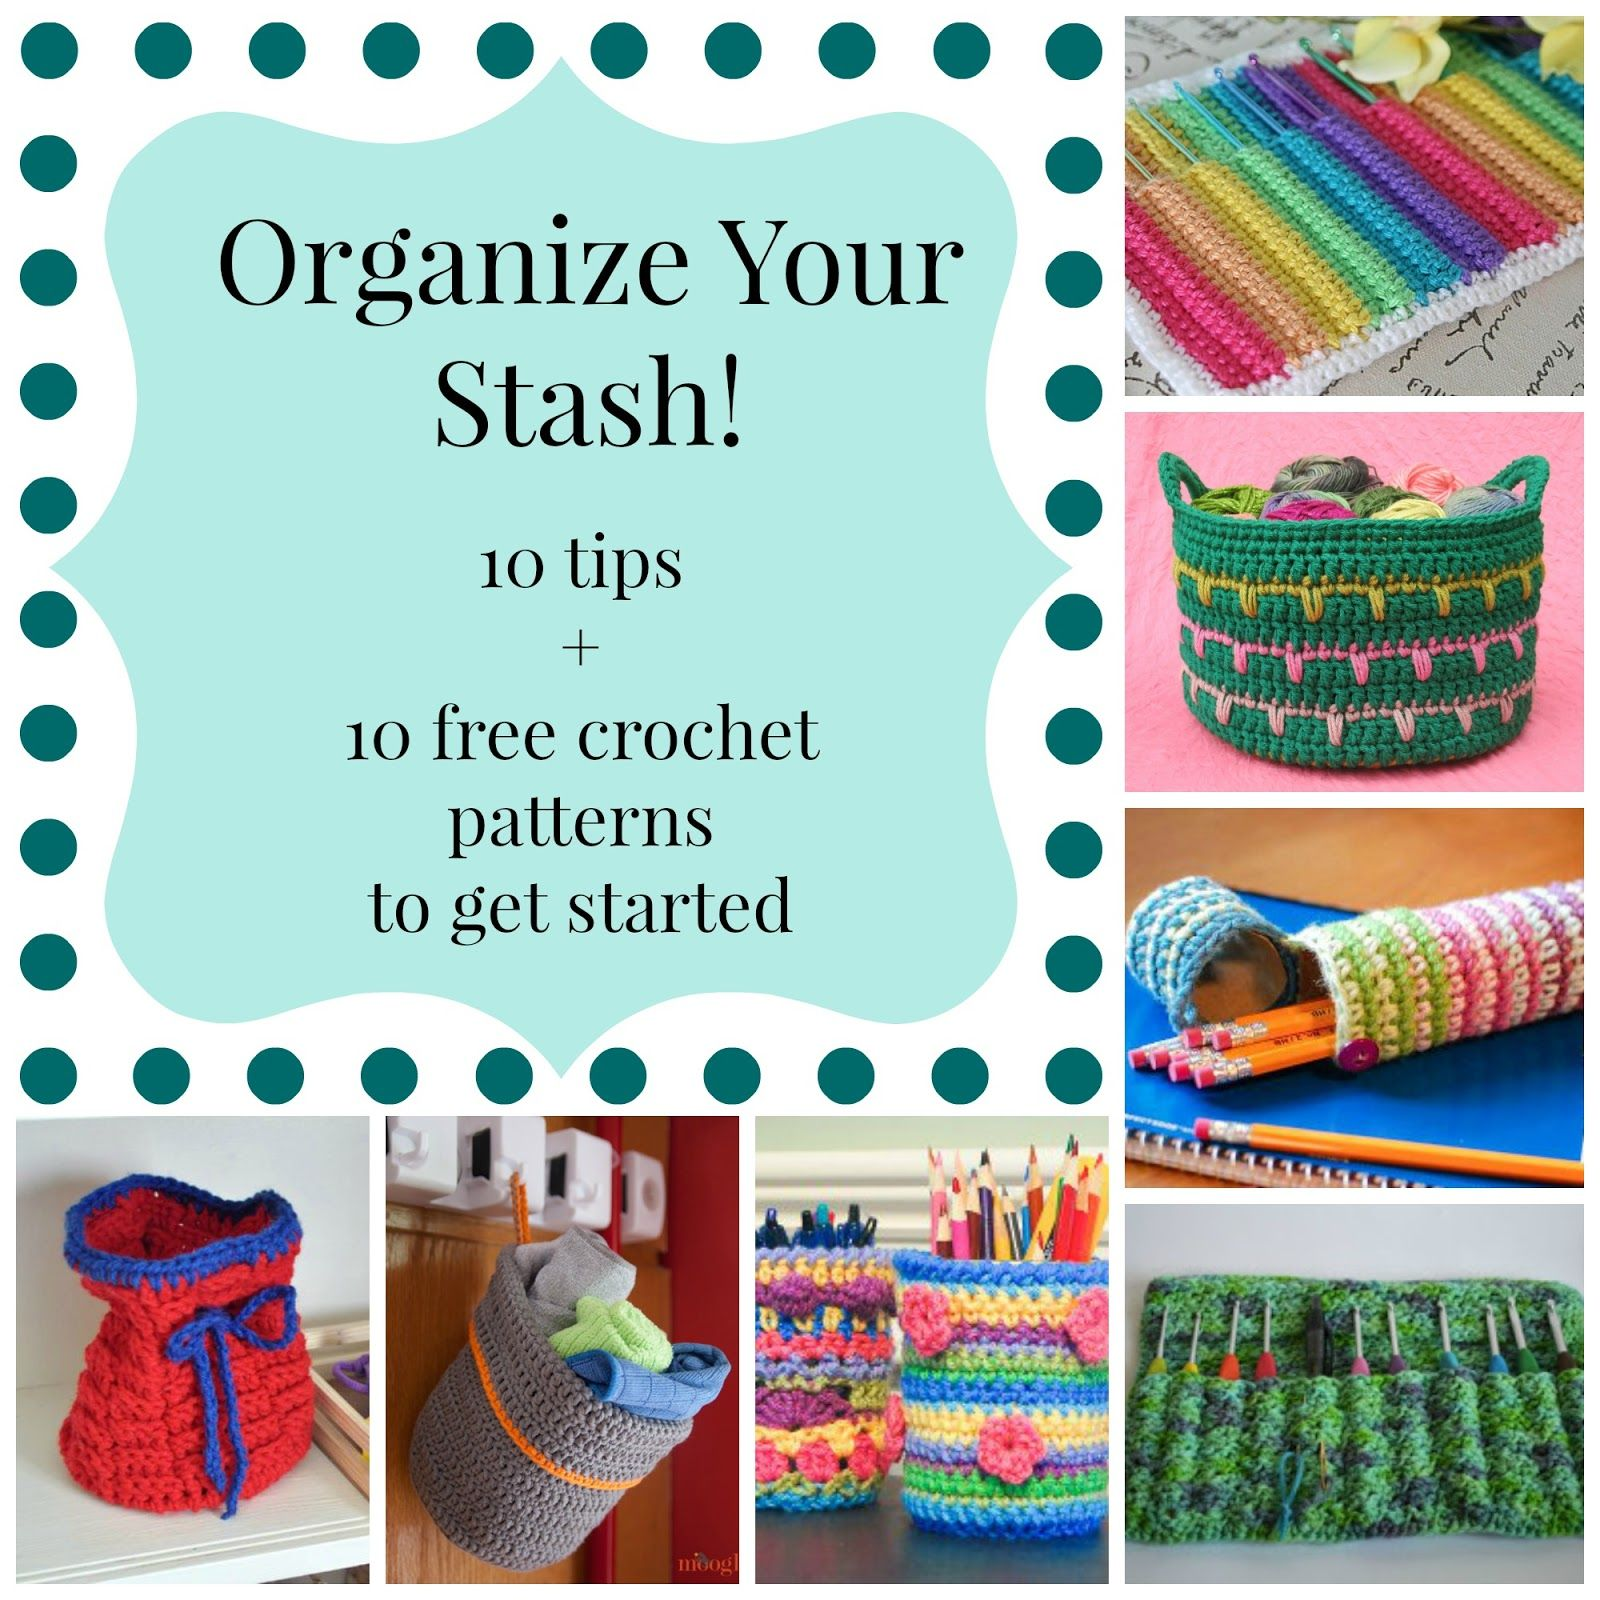 Coraline Pdf Libro Organize Your Stash 10 Tips 43 10 Free Crochet Patterns To